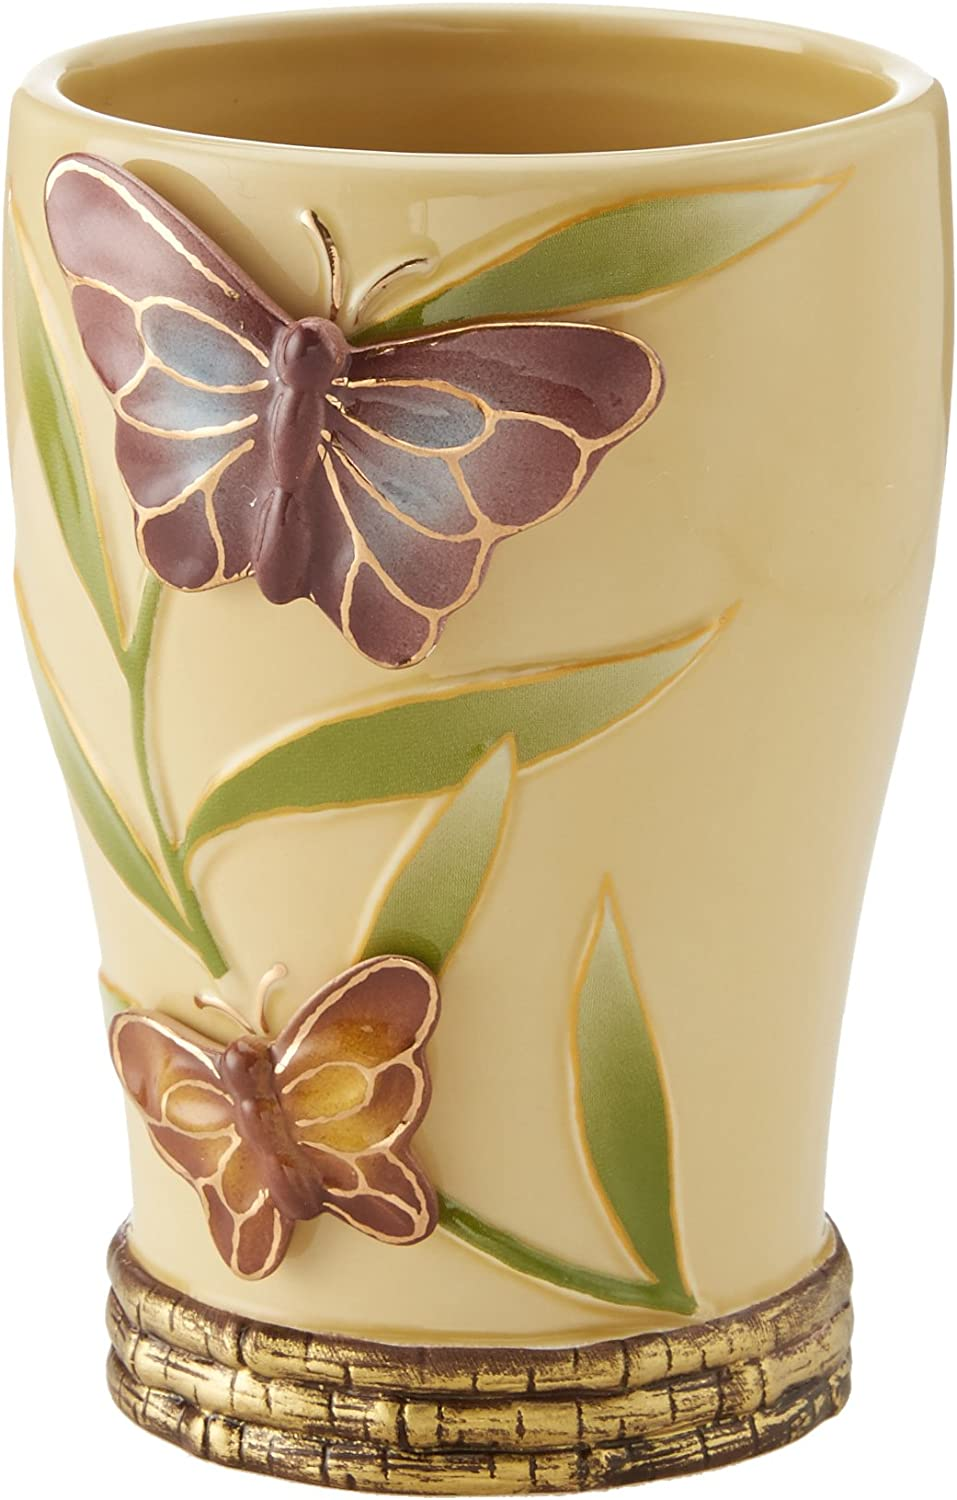 Creative Bath Bora Ceramic Beige Tumbler Spring new work one Popular product after another